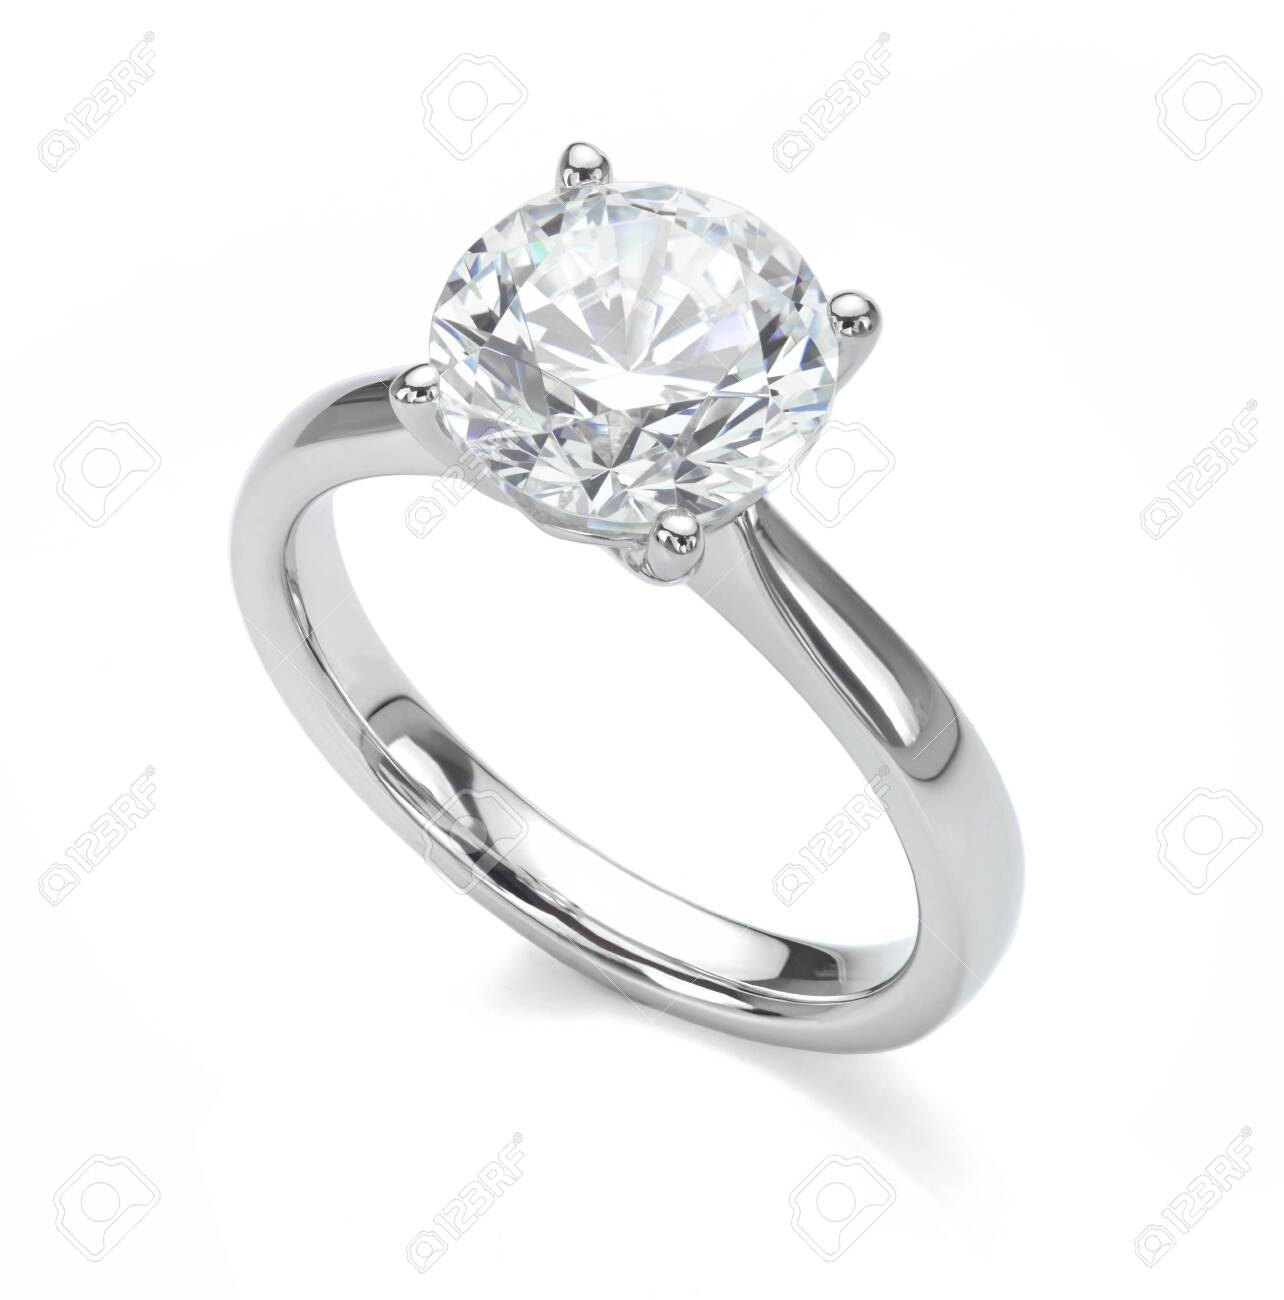 Diamond Ring Isolated on White Engagement Solitaire Style Ring - 142738103